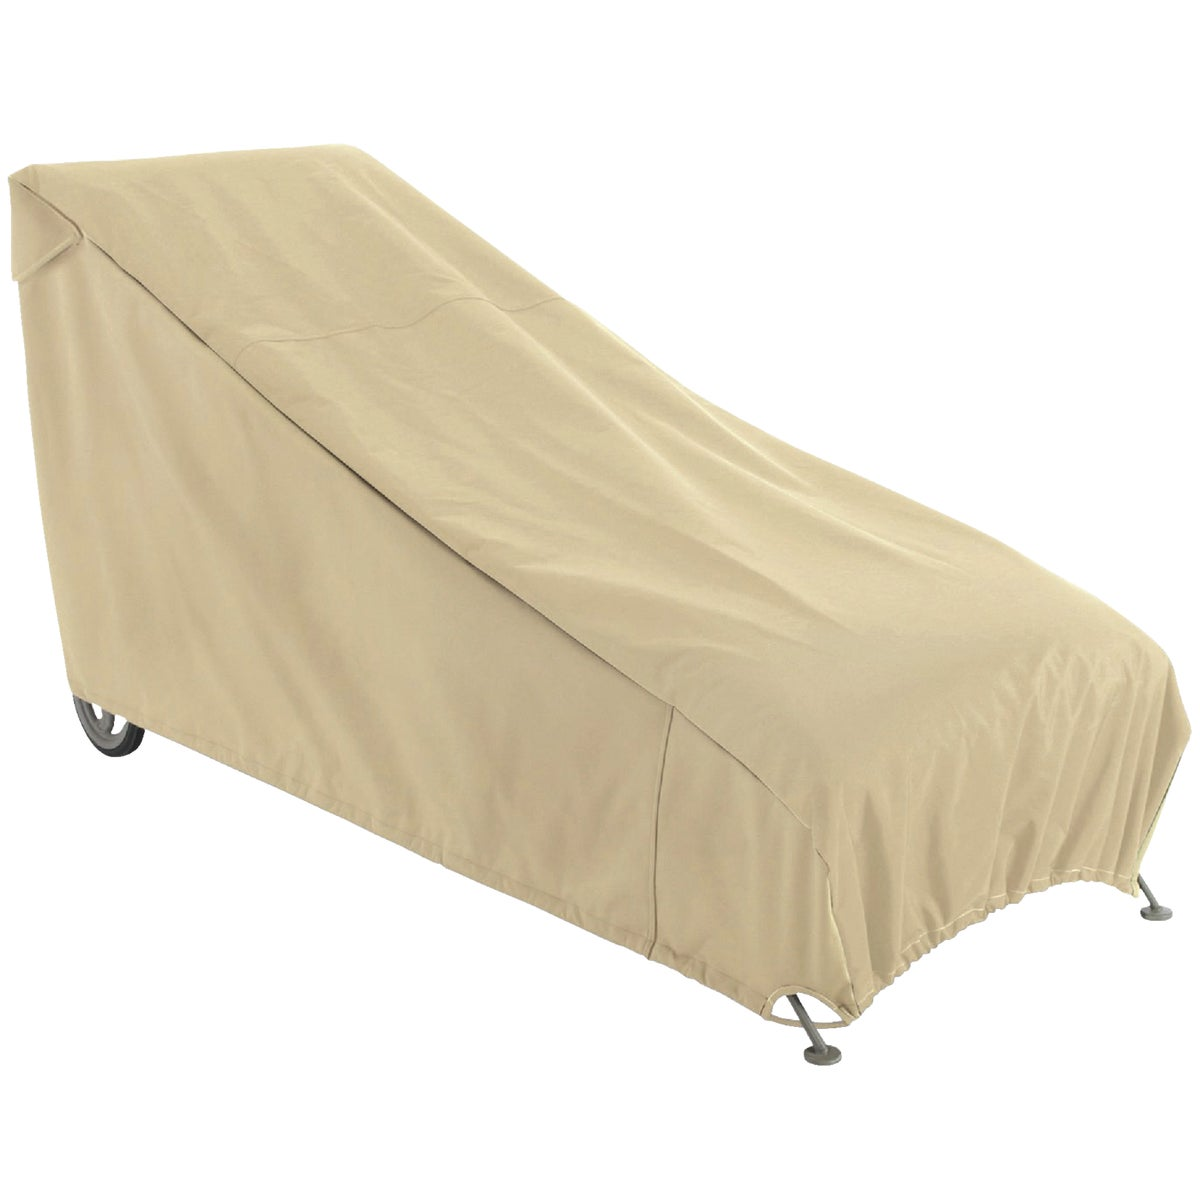 TERAZ PATIO CHAISE COVER - 58952 by Classic Accessories